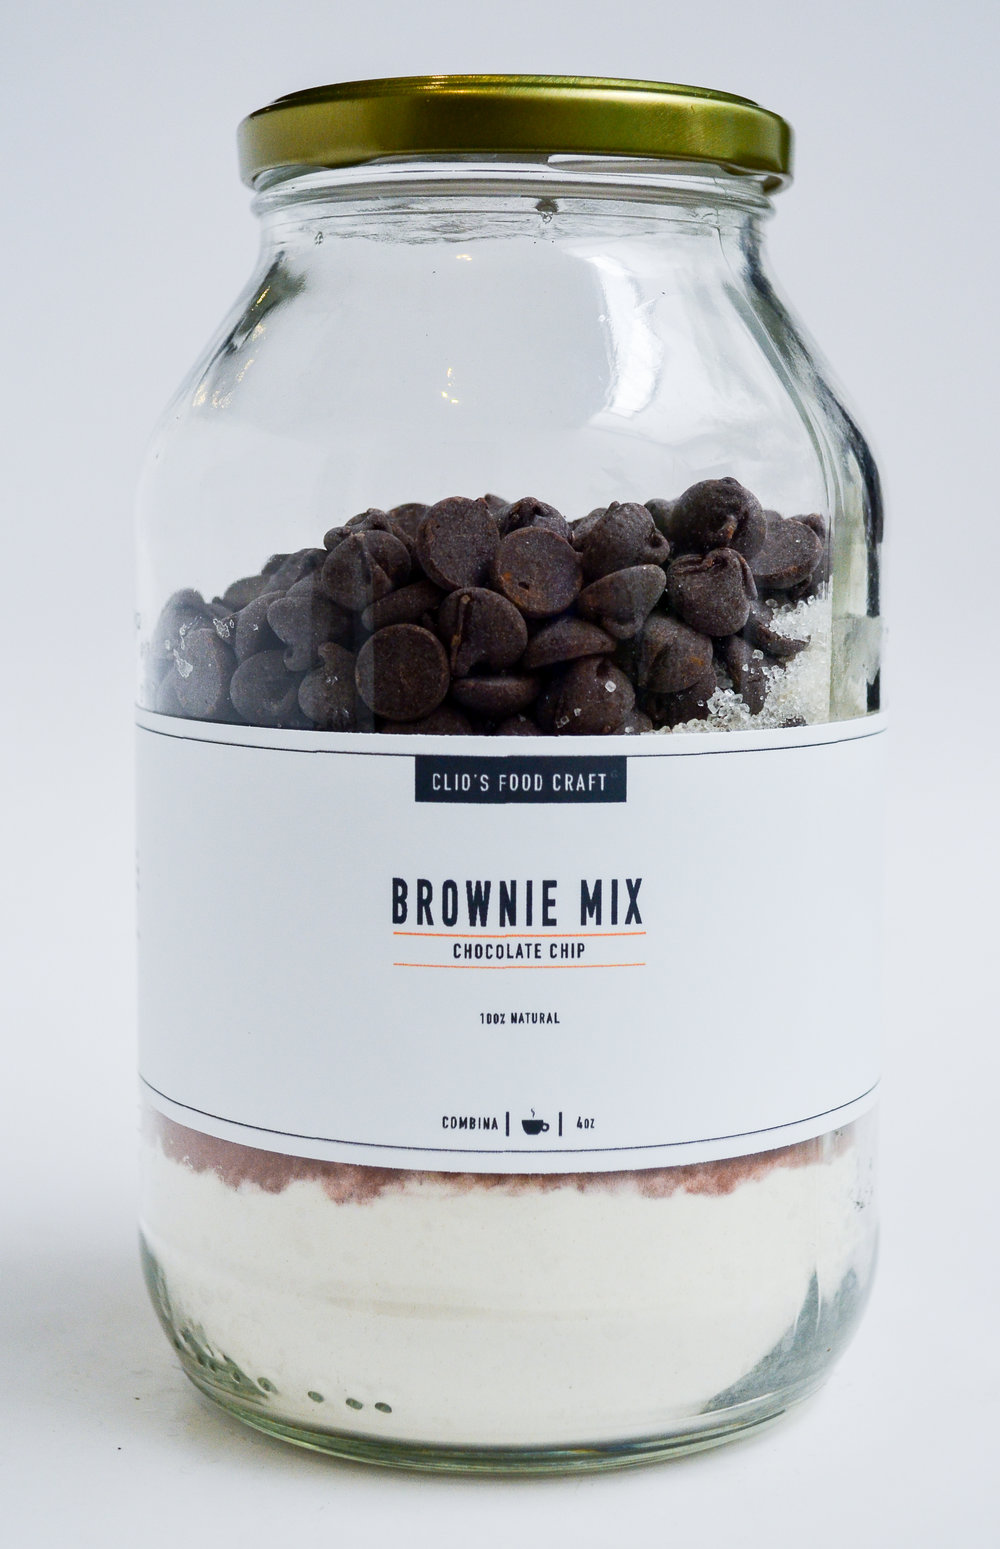 BROWNIE MIX CON CHOCOLATE CHIP - Q.50 4oz